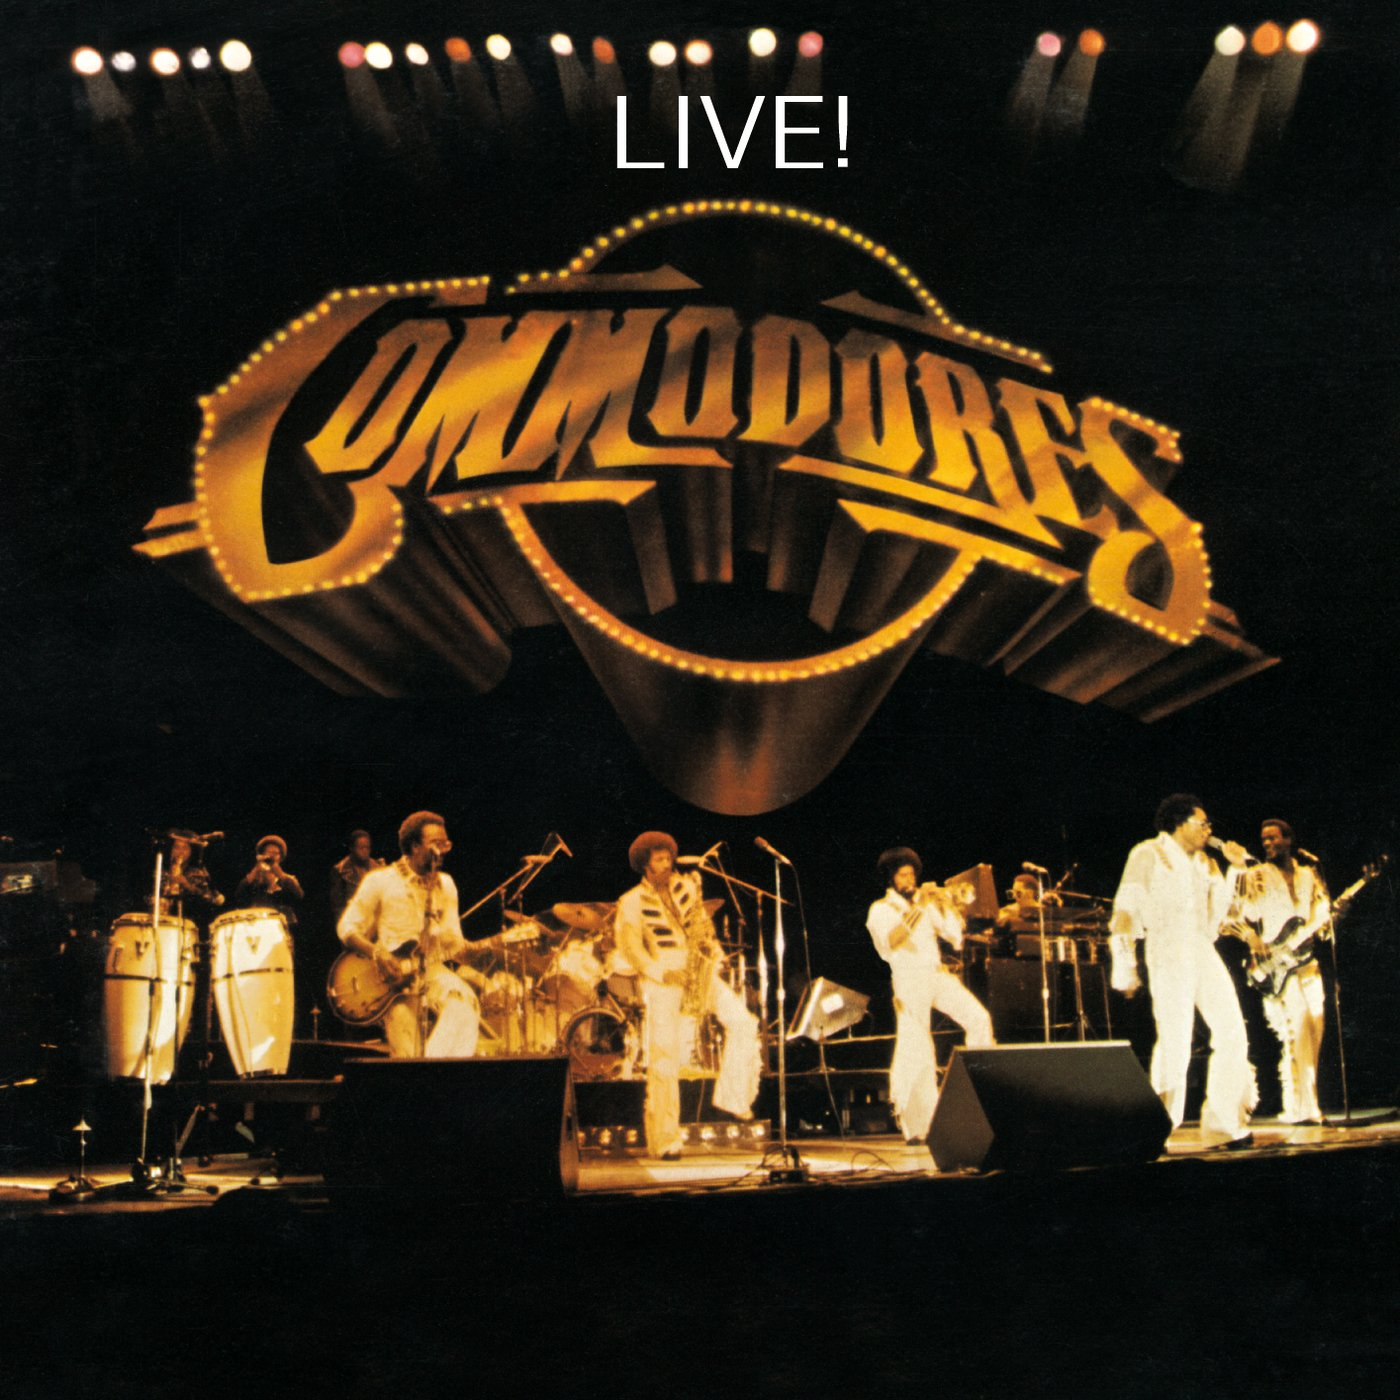 Live! (Remastered) by Commodores